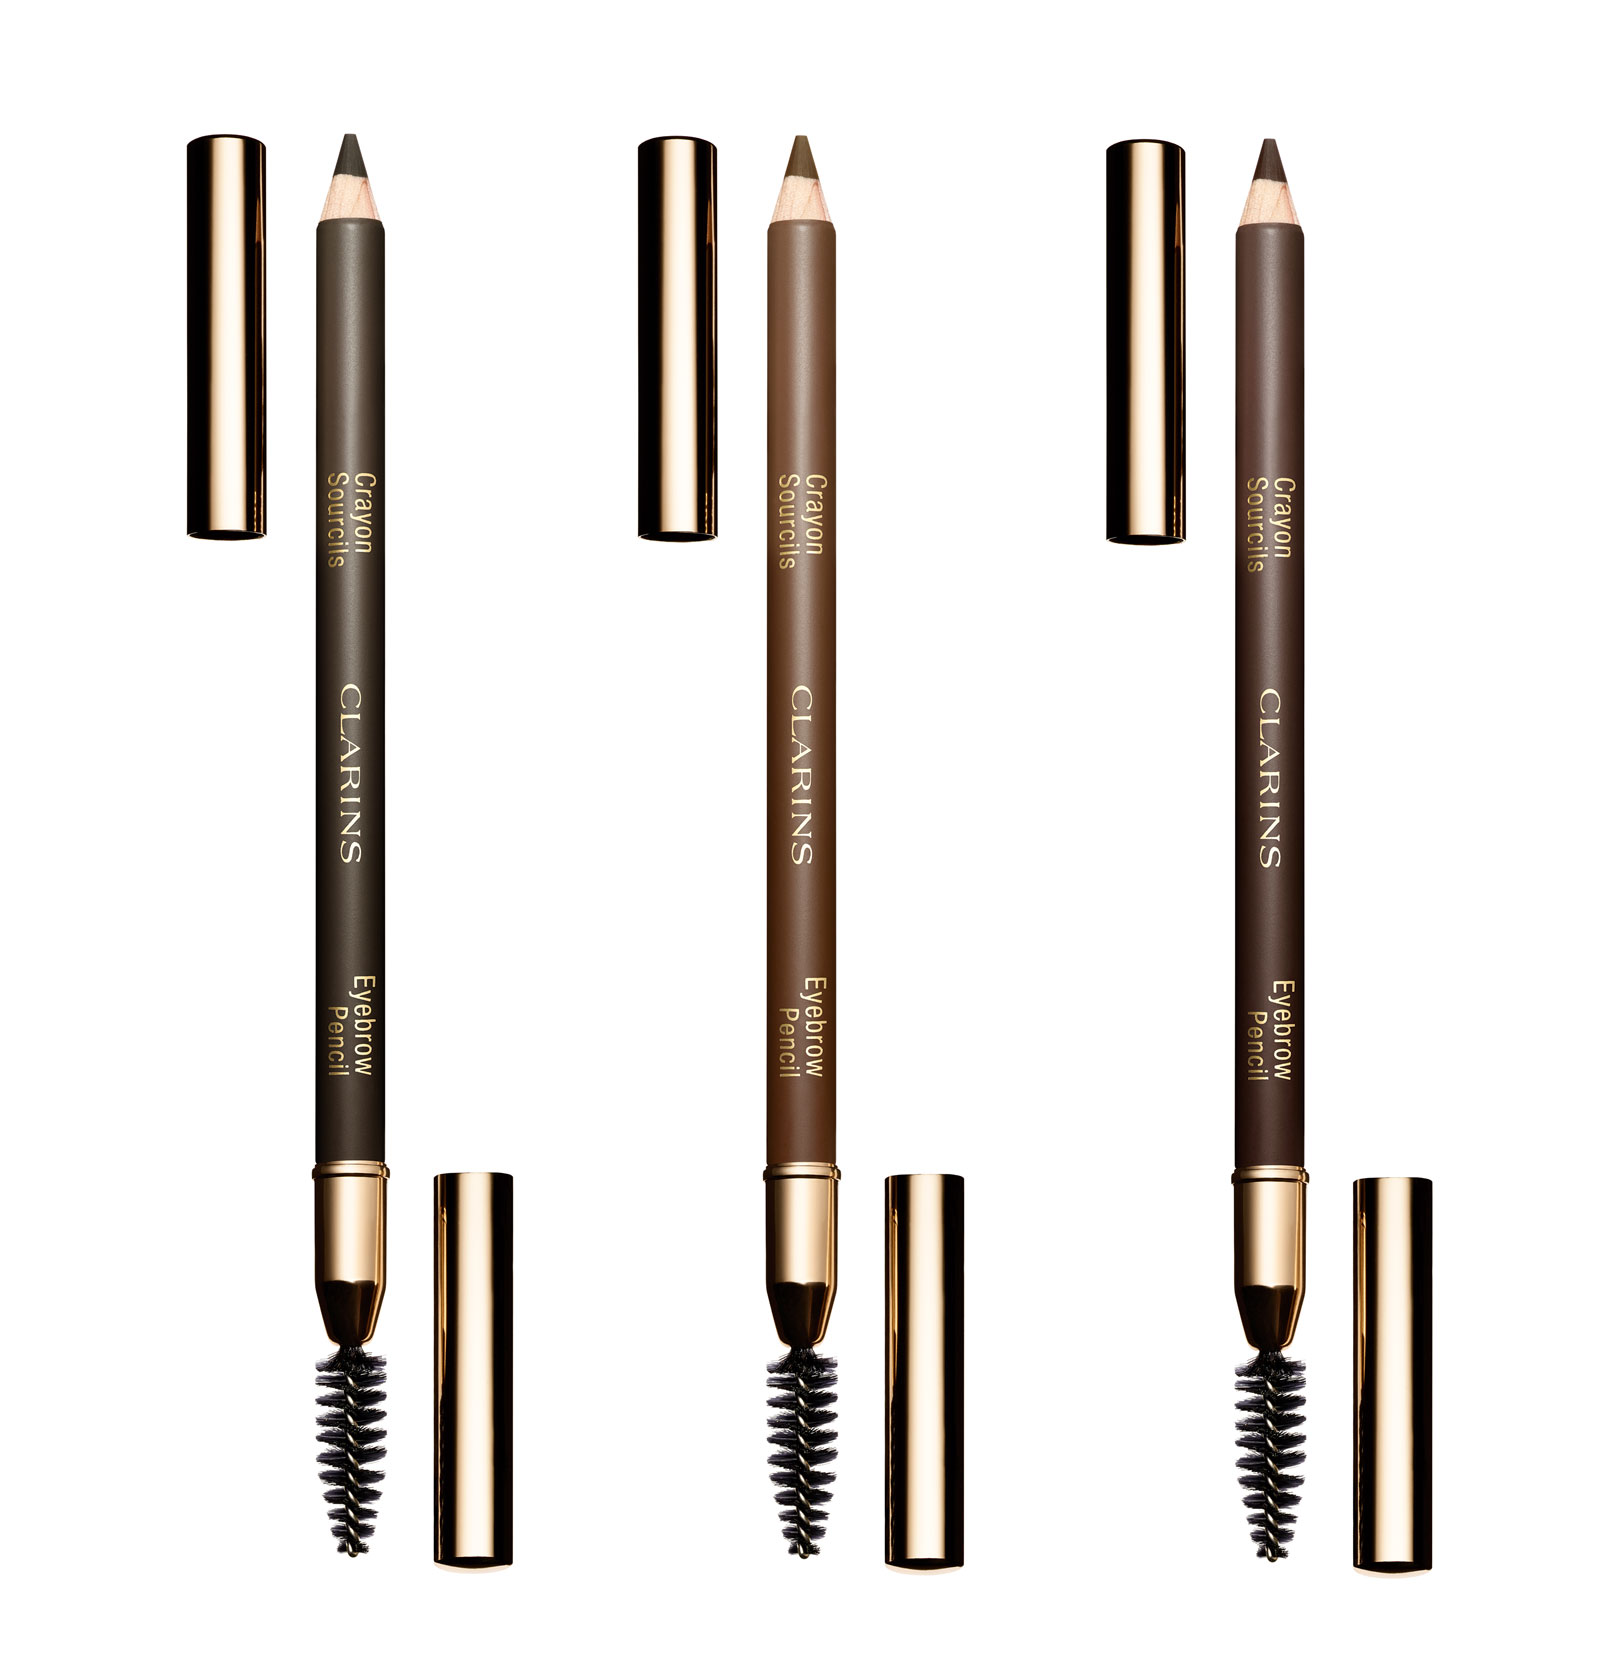 Clarins Eyebrow Pencils